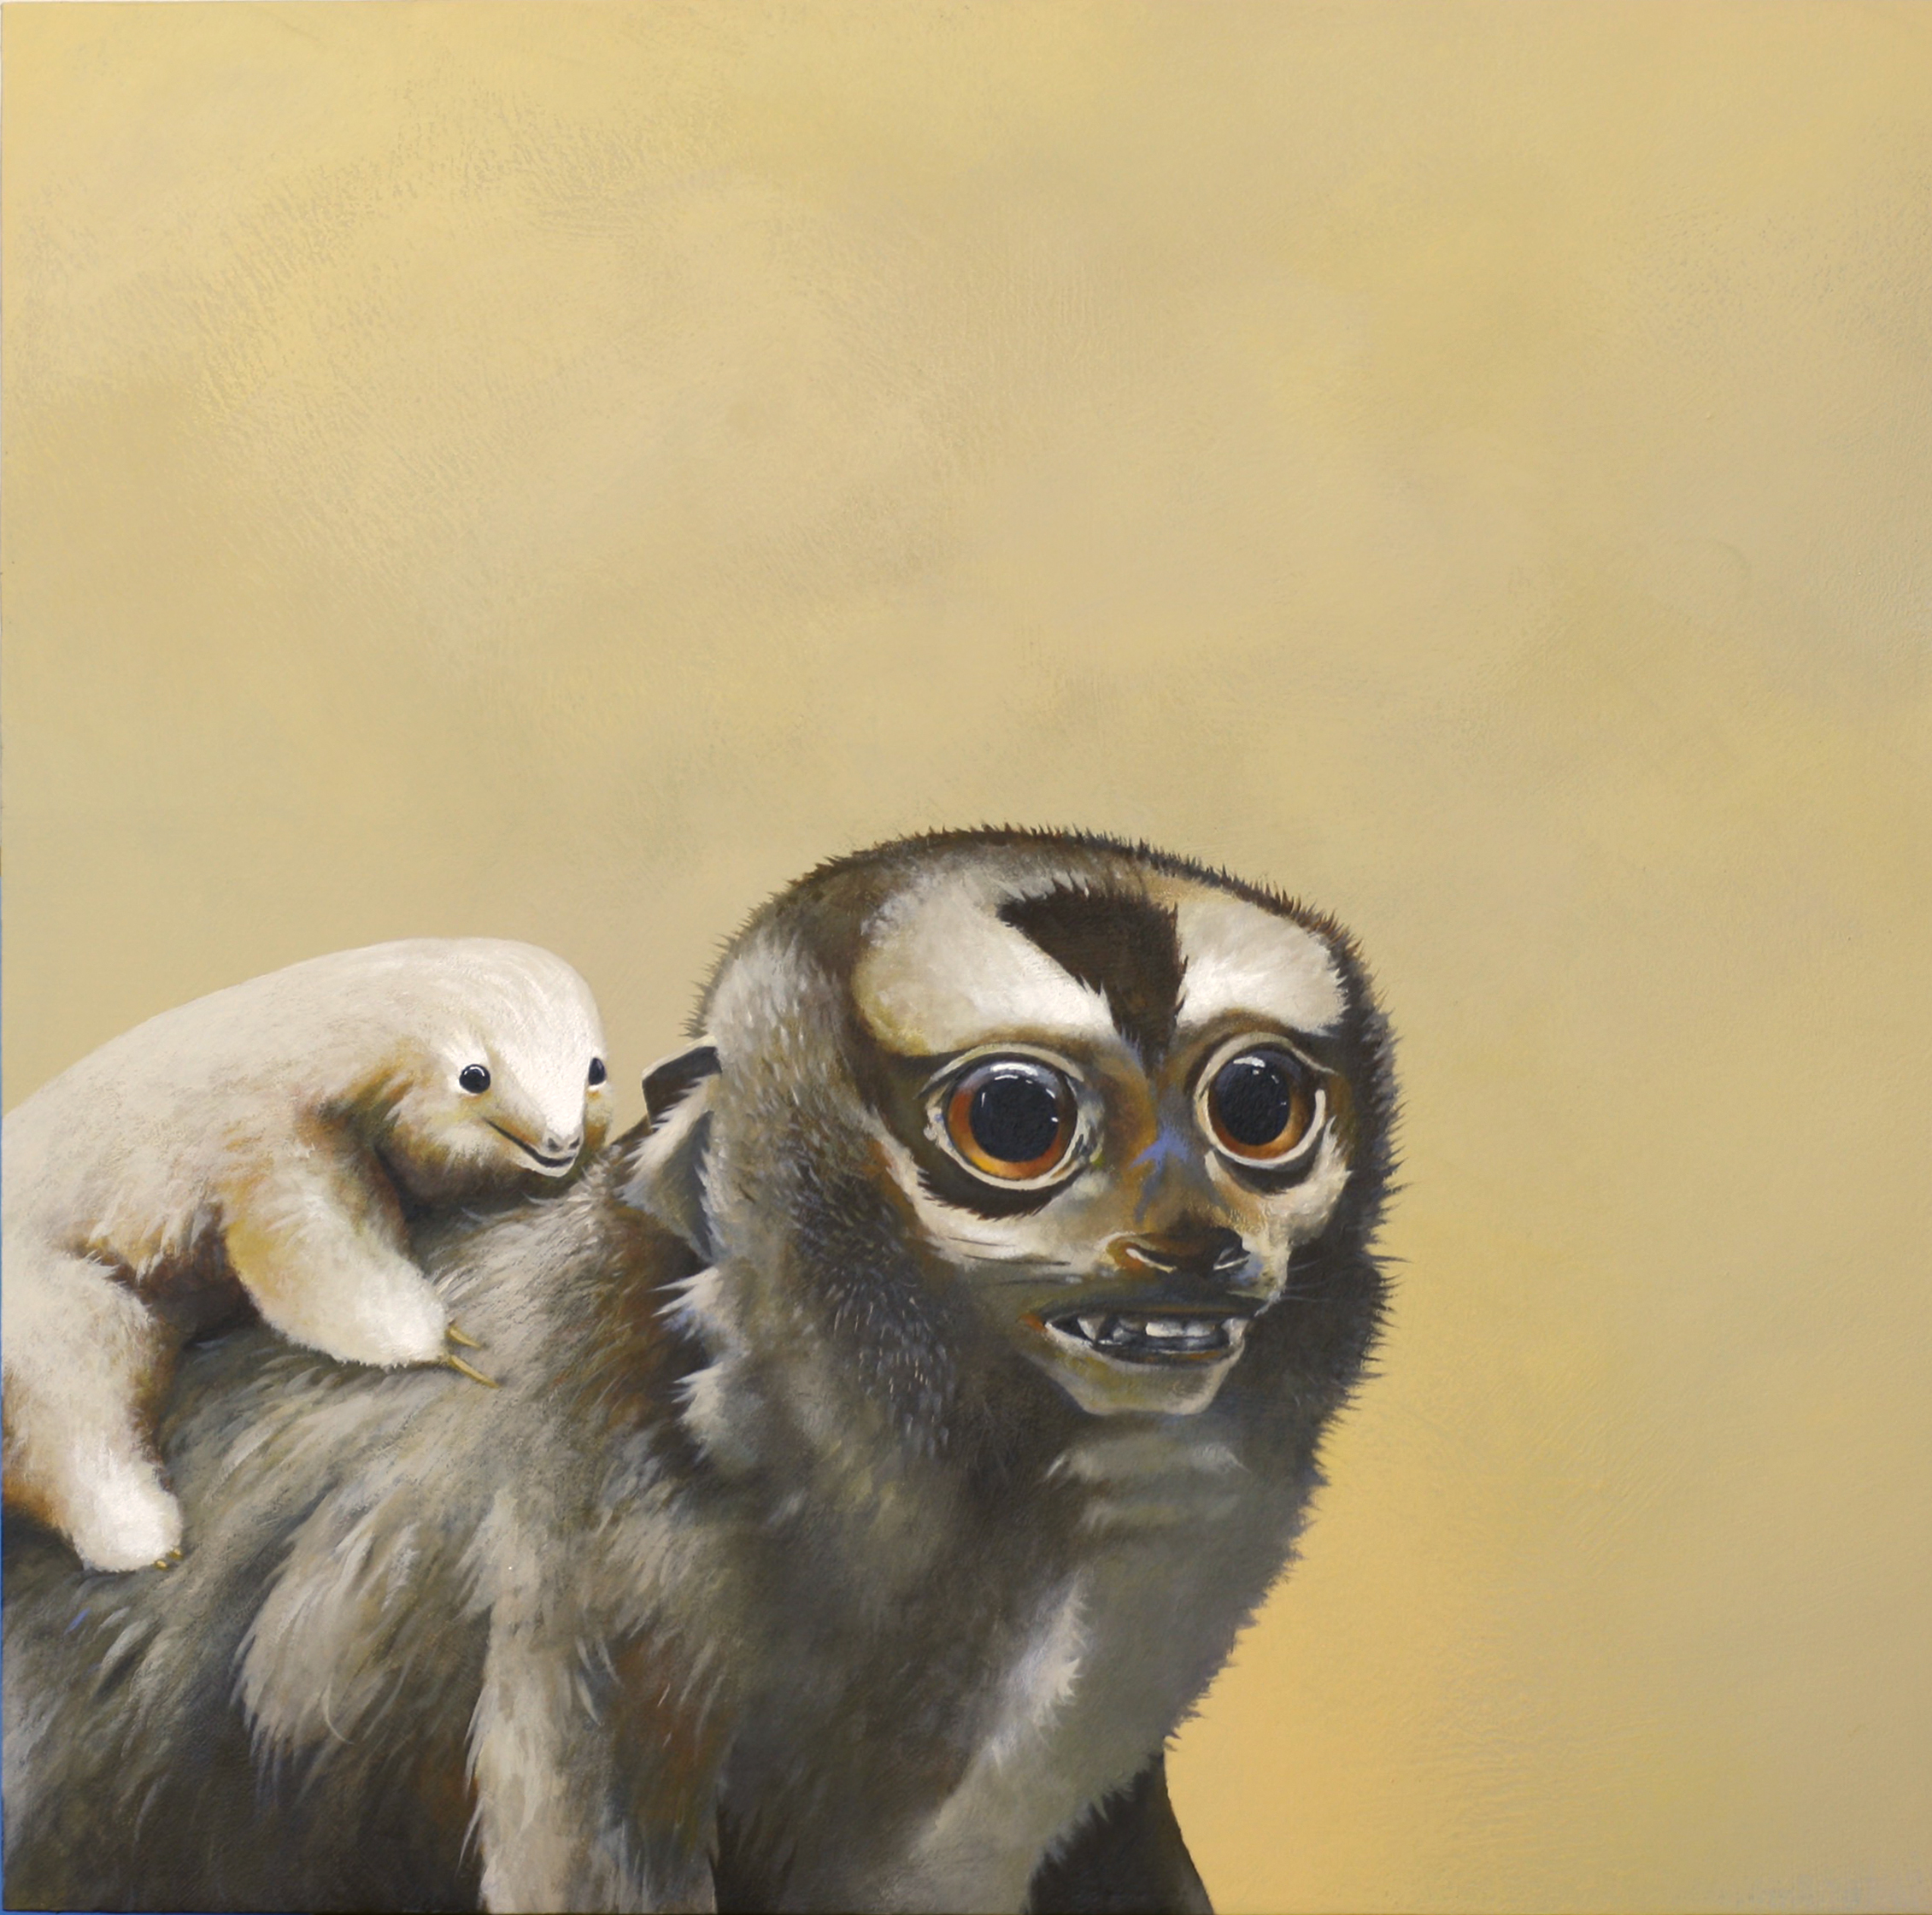 """My painting """"RIDE OR DIE"""" was selected for inclusion in the """"Sweet N Low: An International Show of Cute"""" show at Bedford Gallery in Walnut Creek, CA. The show runs until August 27, 2017. Lots of amazing artists, including Margaret Keane of  Big Eyes  fame. For inquires, contact the gallery at koppes@bedfordgallery.com. More info about the show can be found on the  Bedford Gallery website ."""